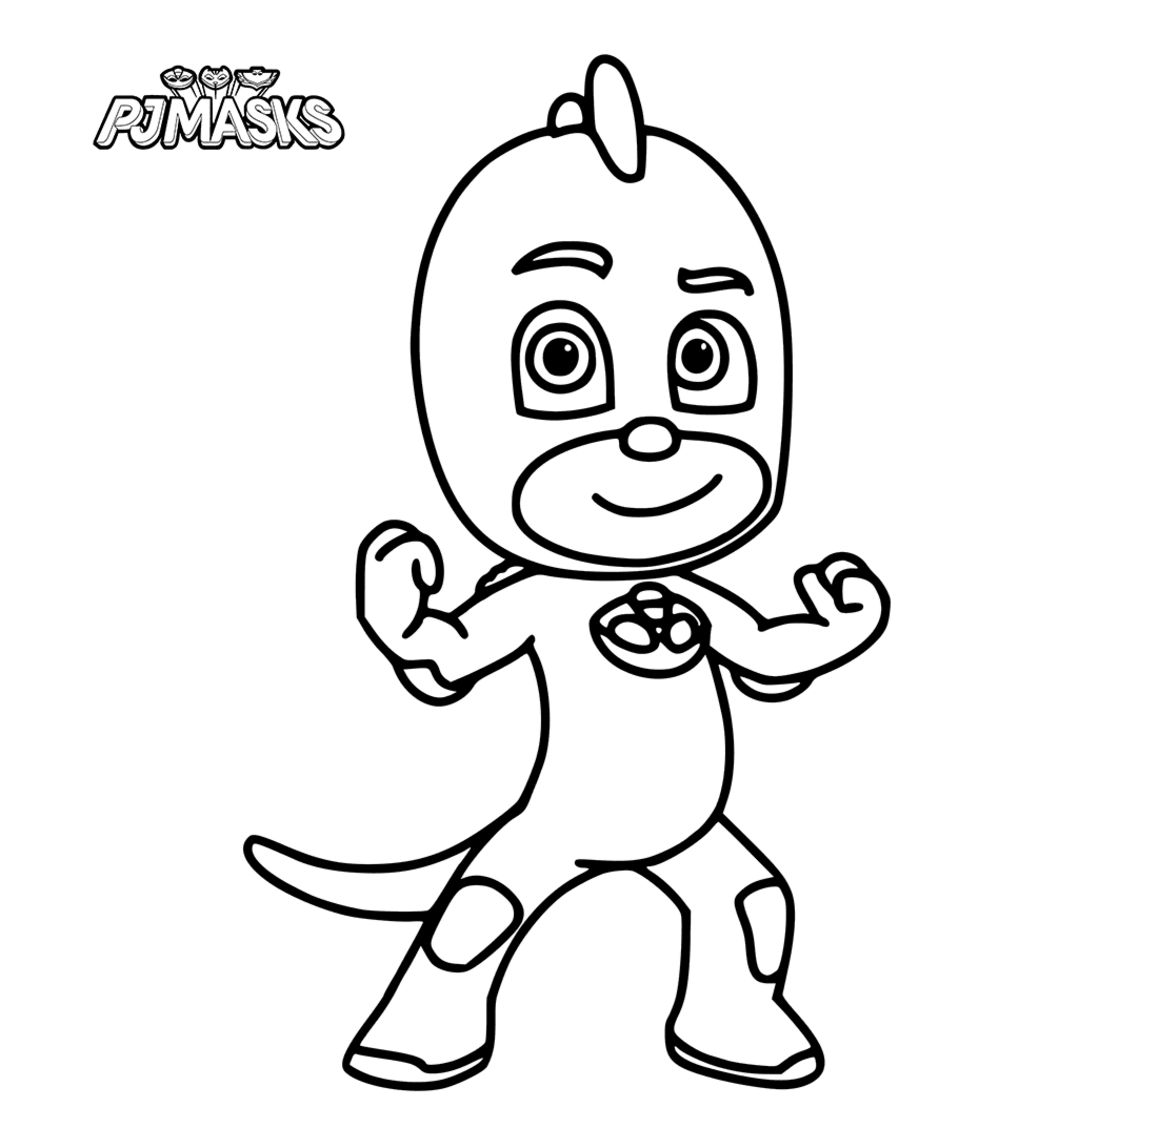 photograph about Printable Pj Masks Coloring Pages known as PJ Masks Coloring Webpages - Coloring Household